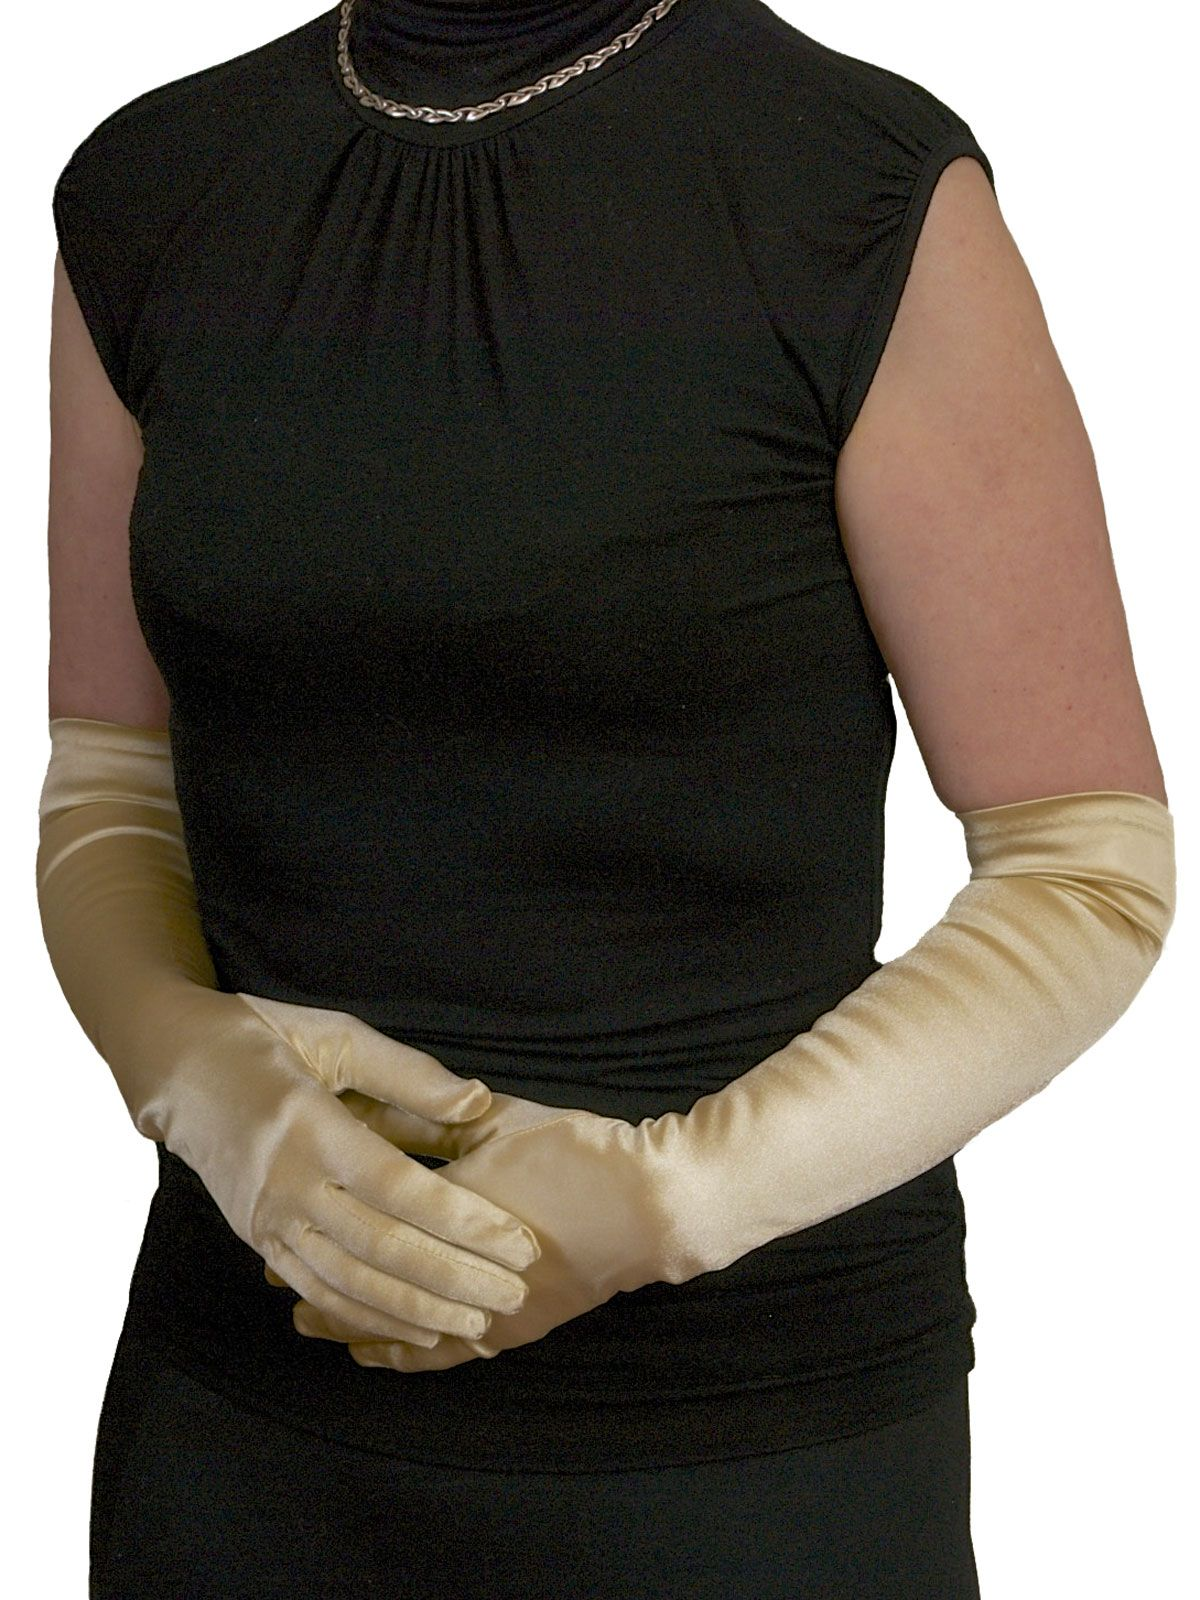 Black gloves evening wear - Dents Long Satin Gloves 3 4 Elbow Length Classic Dress Evening Gloves